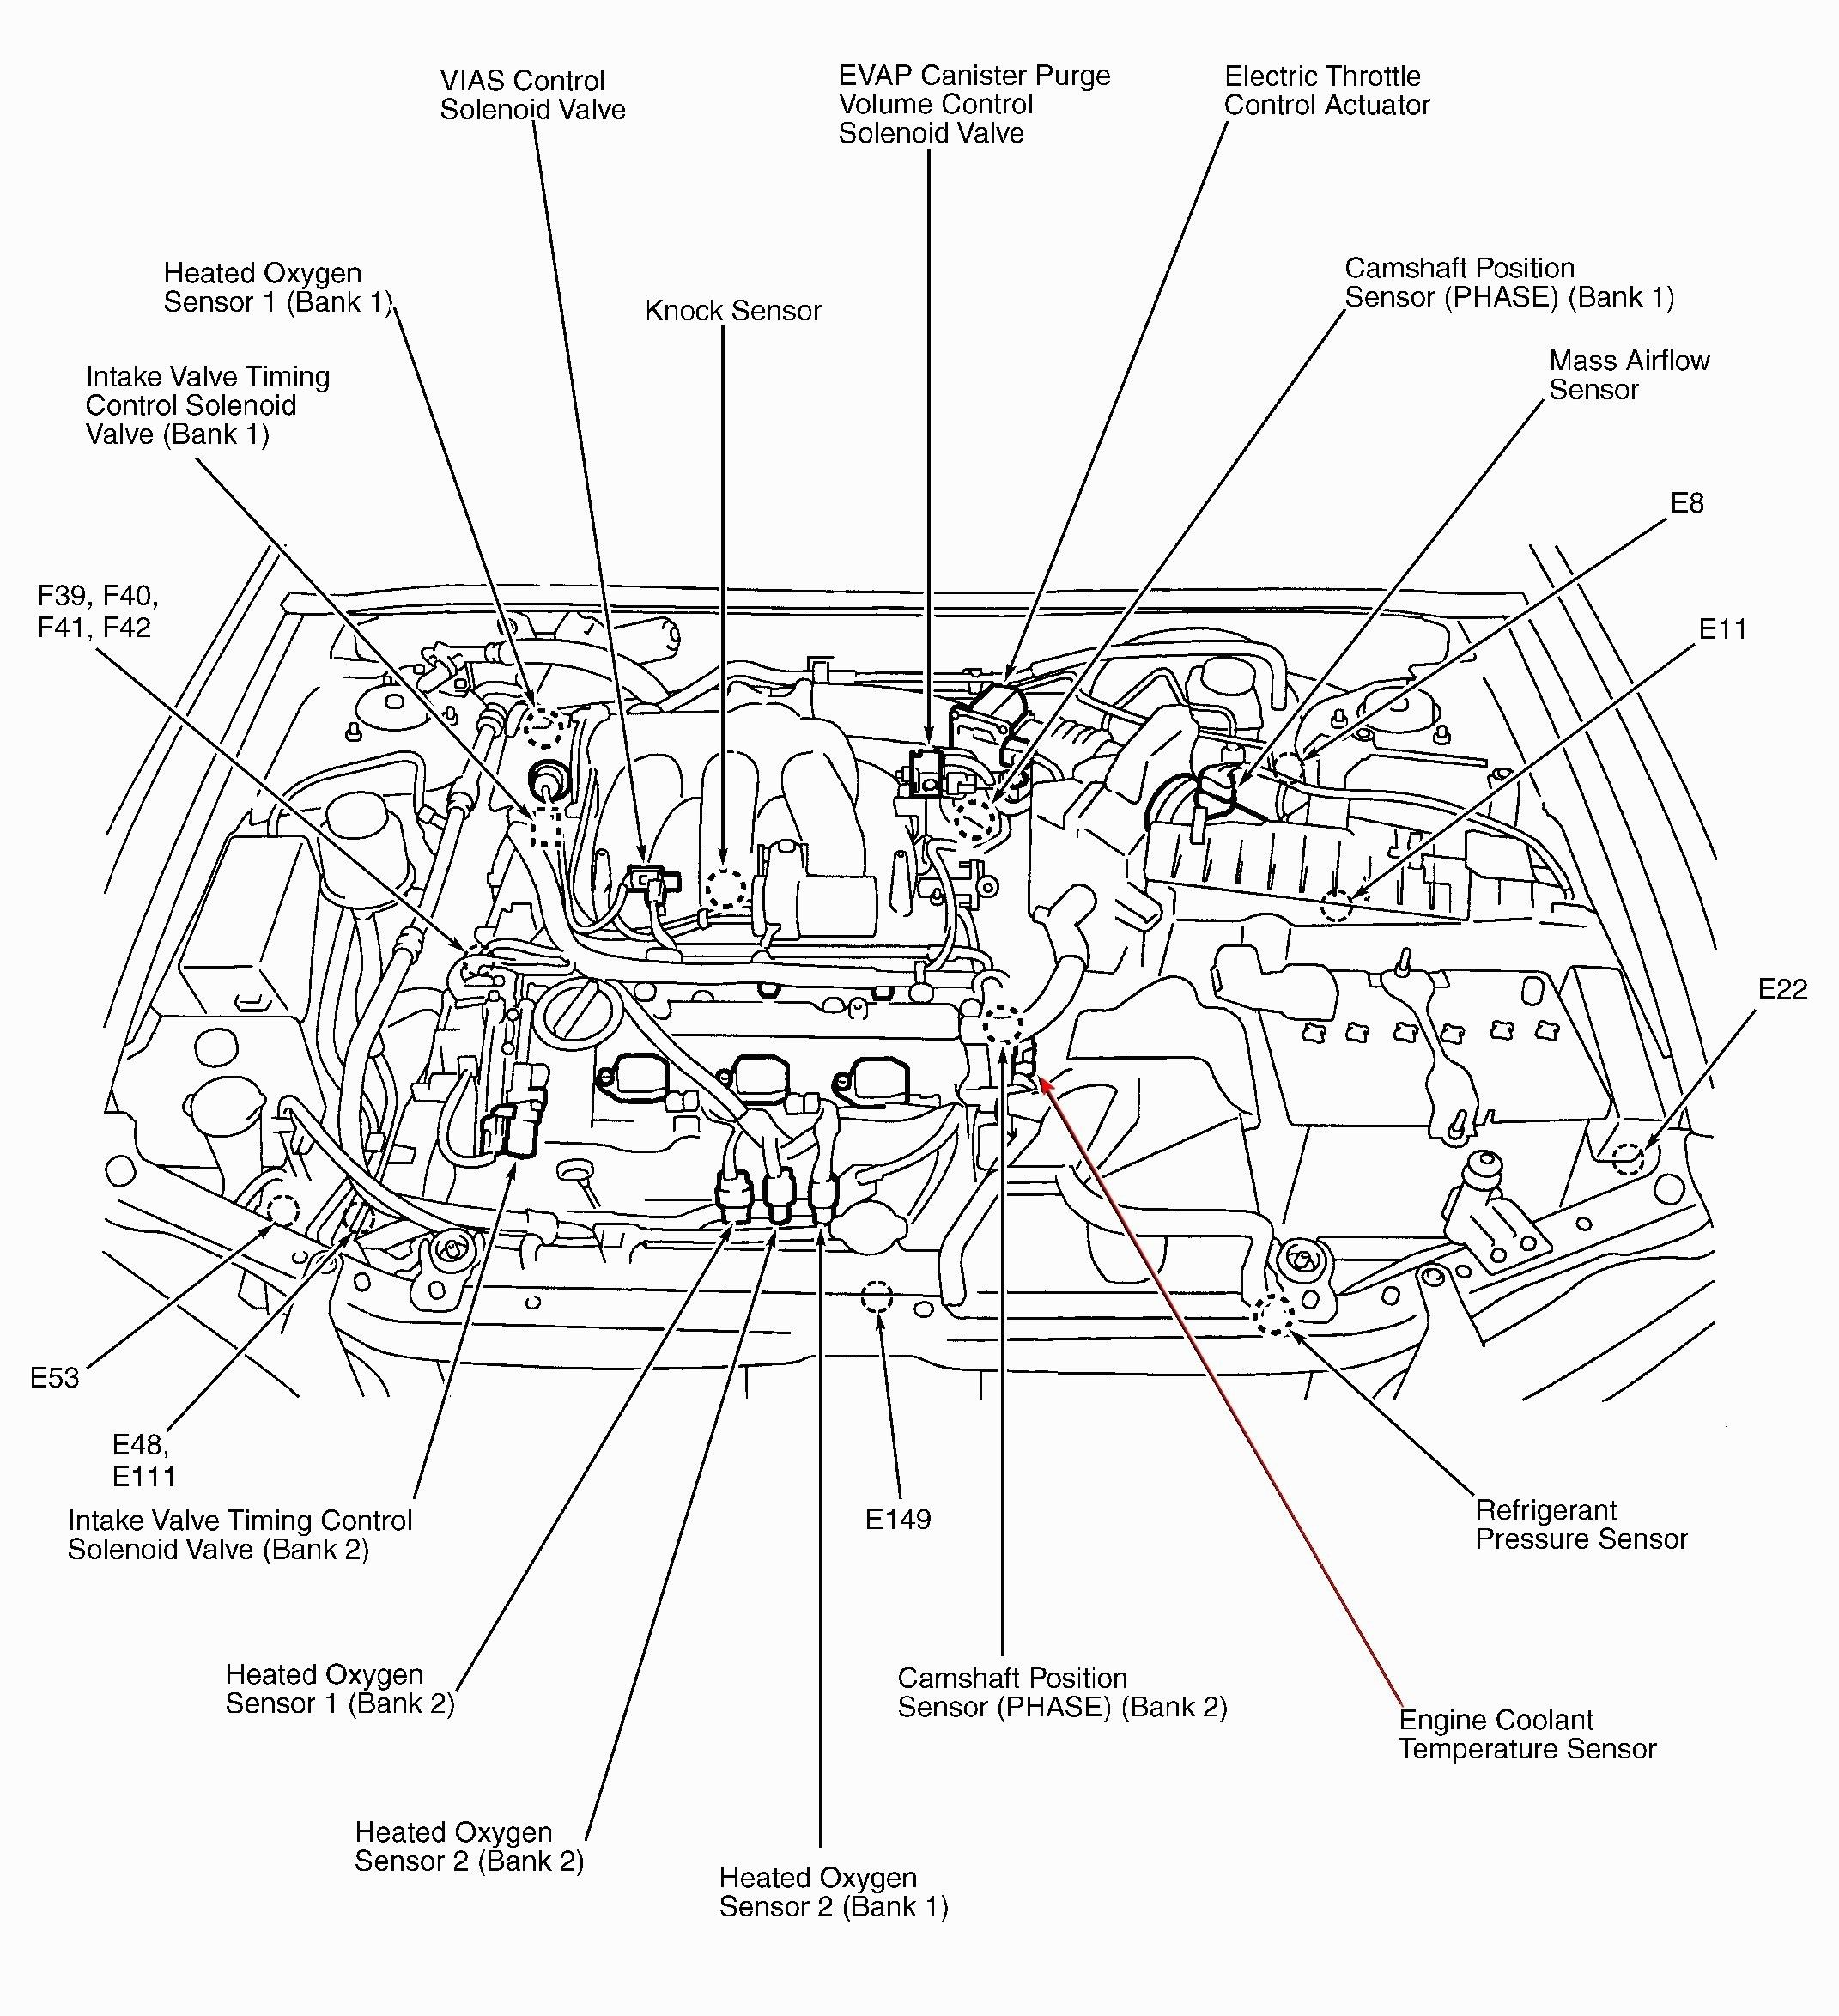 Wiring Diagram For Car Engine Diagram Diagramtemplate Diagramsample Nissan Pathfinder Nissan Xterra Nissan Maxima